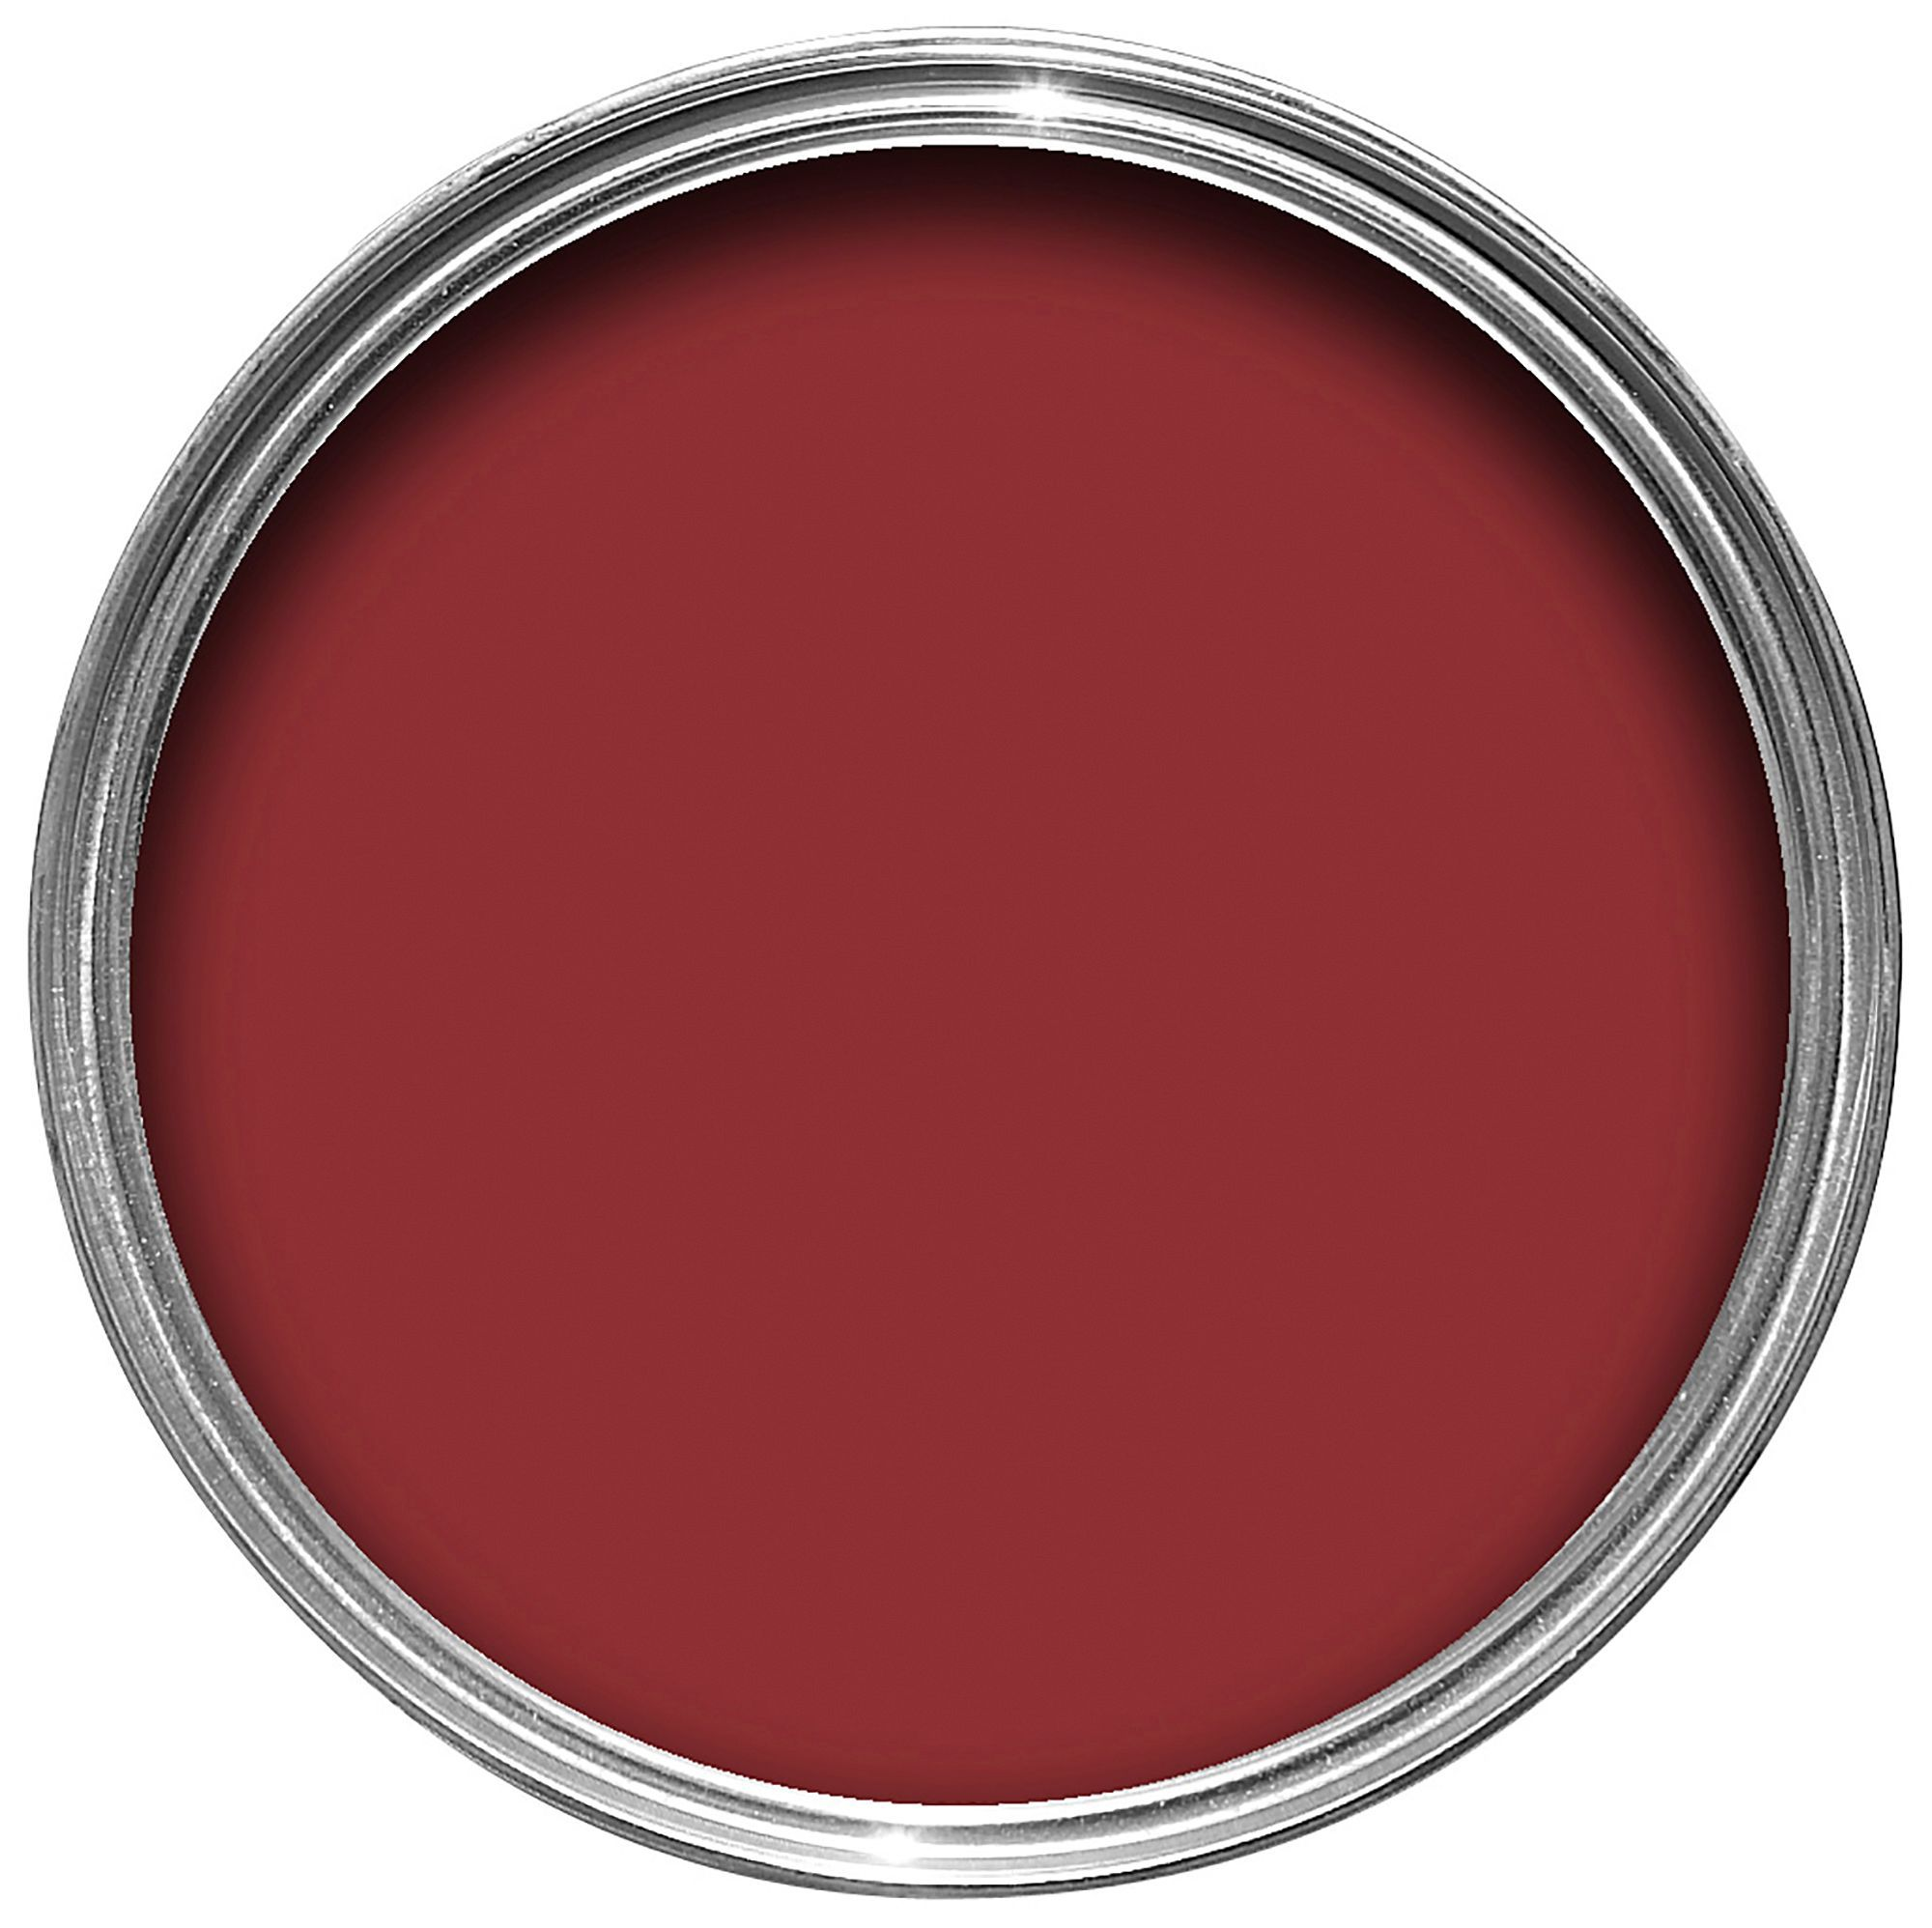 Colours interior exterior classic red gloss wood metal paint 750ml departments diy at b q - Exterior wood paint matt pict ...